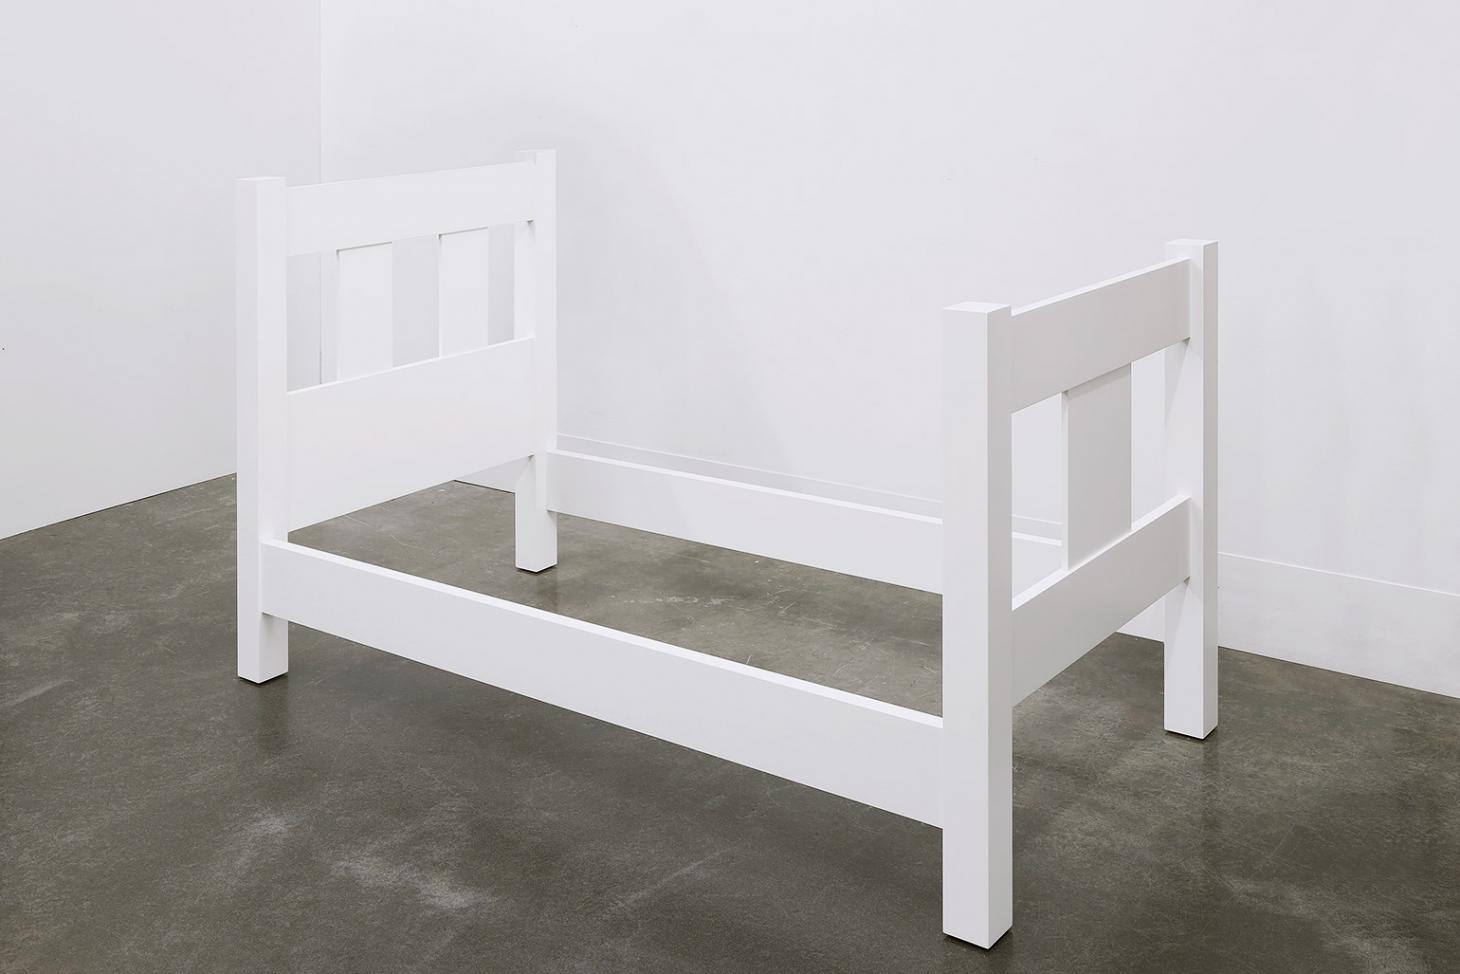 A Sculpture of a Bed, 2018, by Roy McMakin, enamel on eastern maple